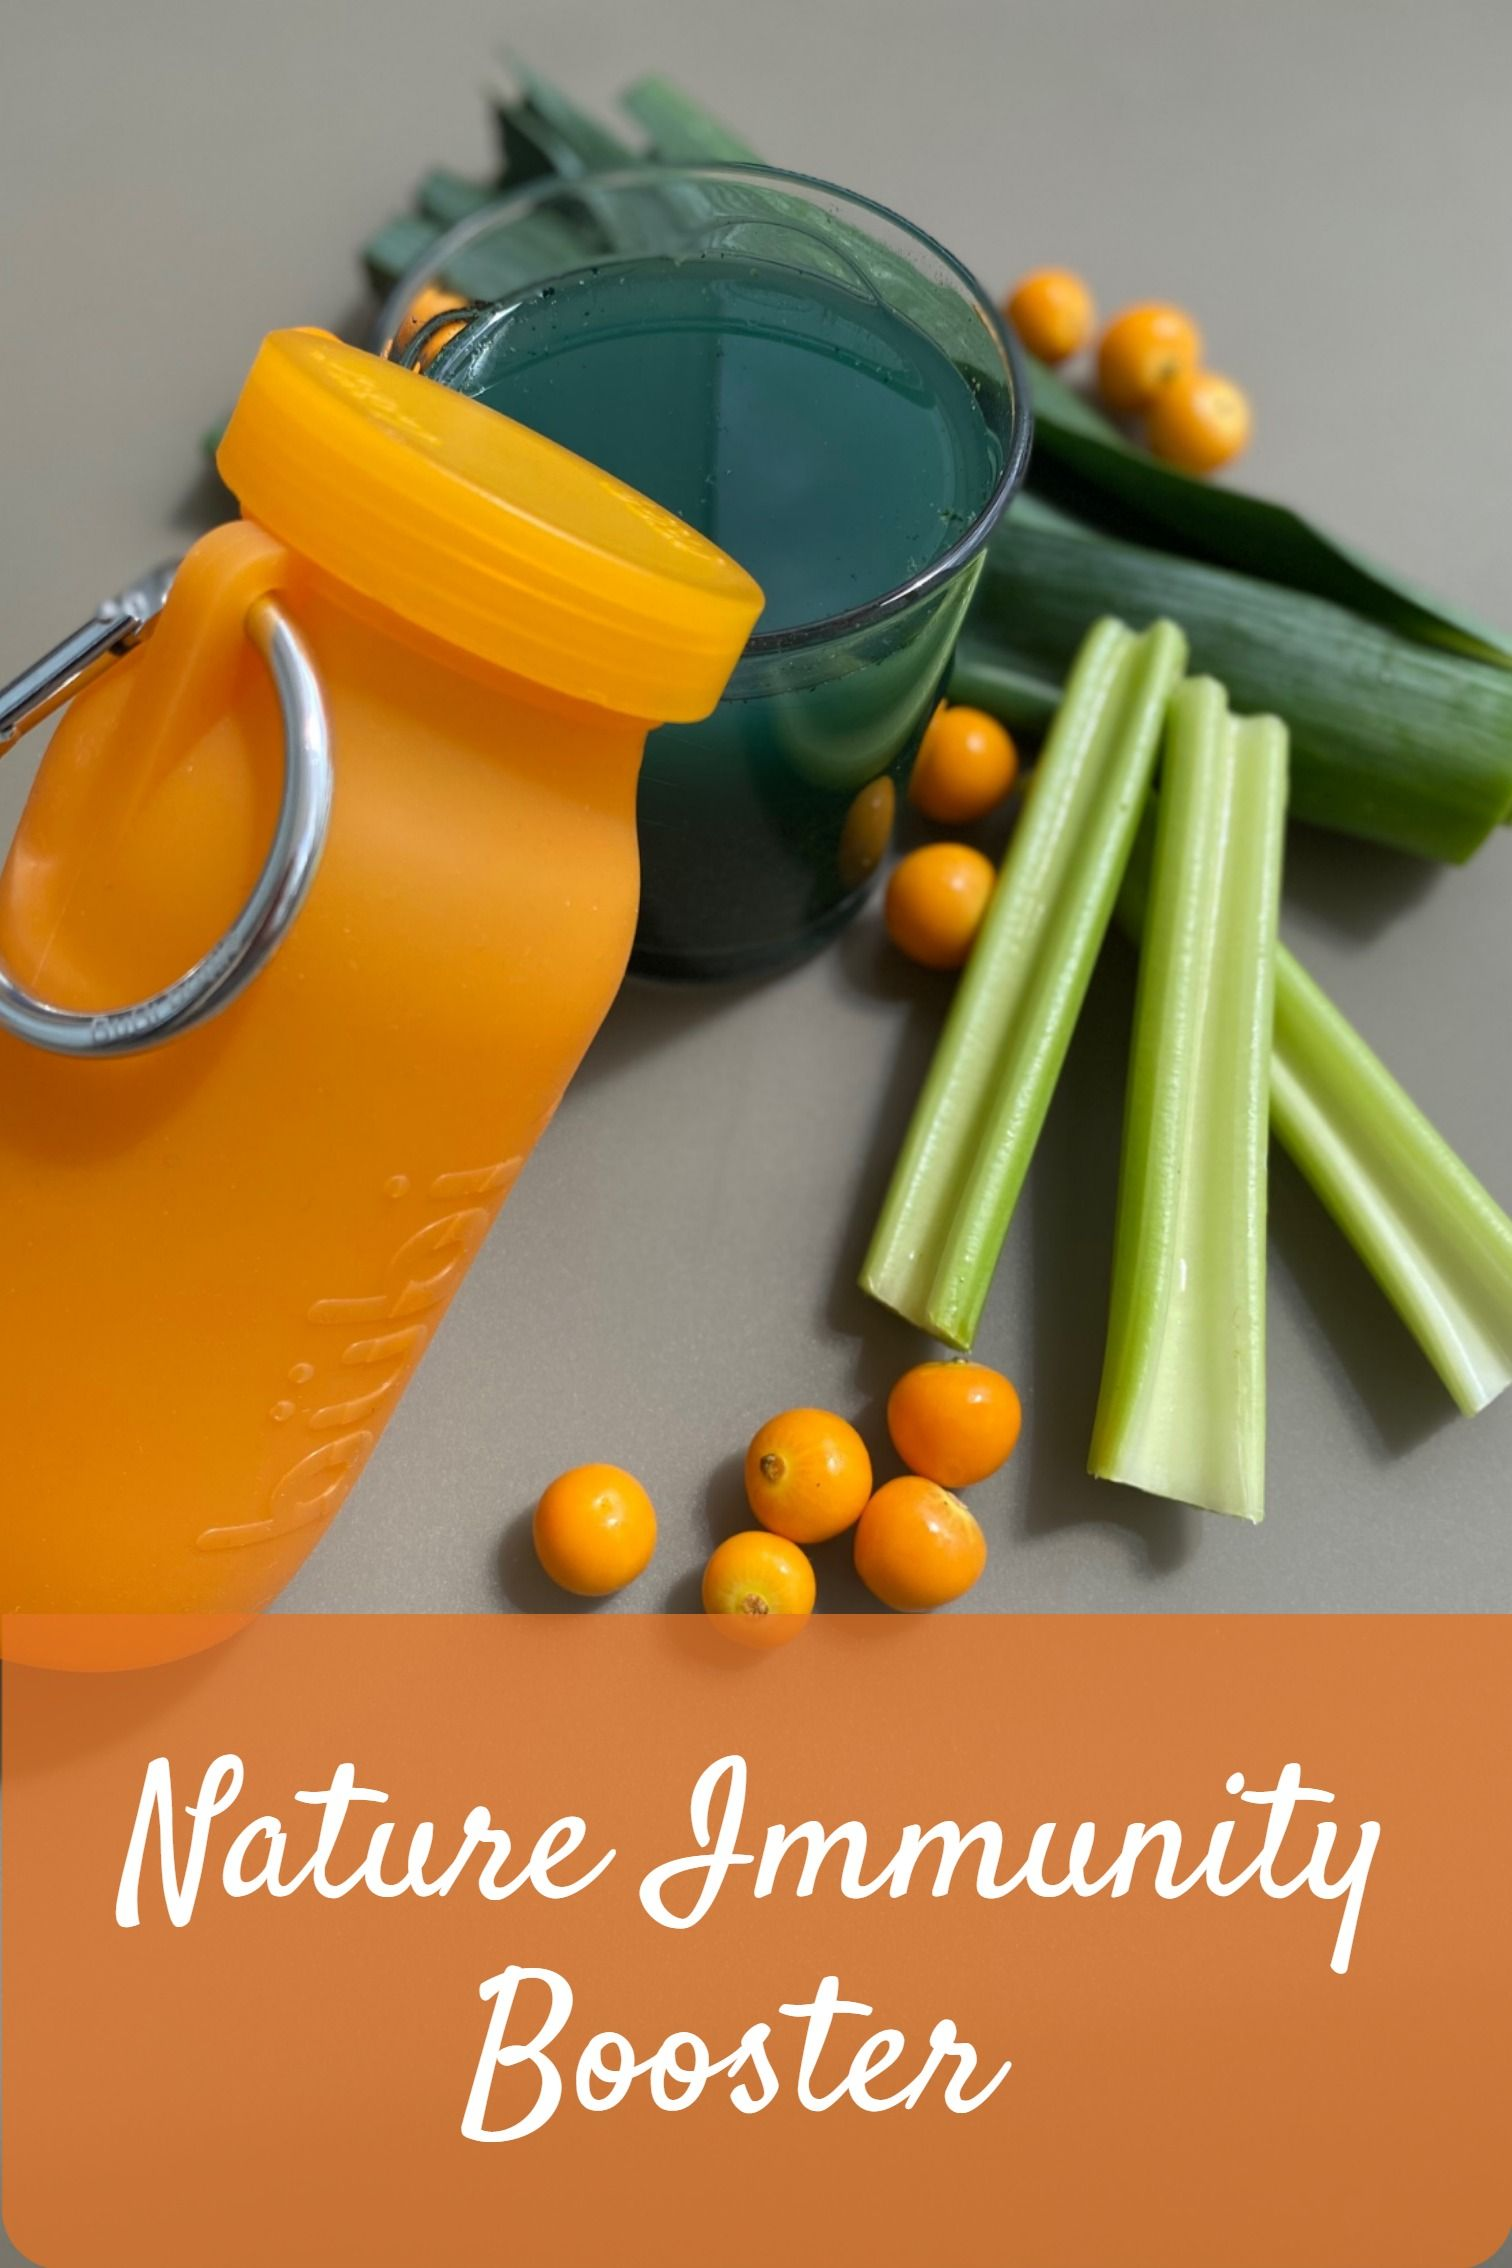 Nature Immunity Booster. Immunity Support Food for